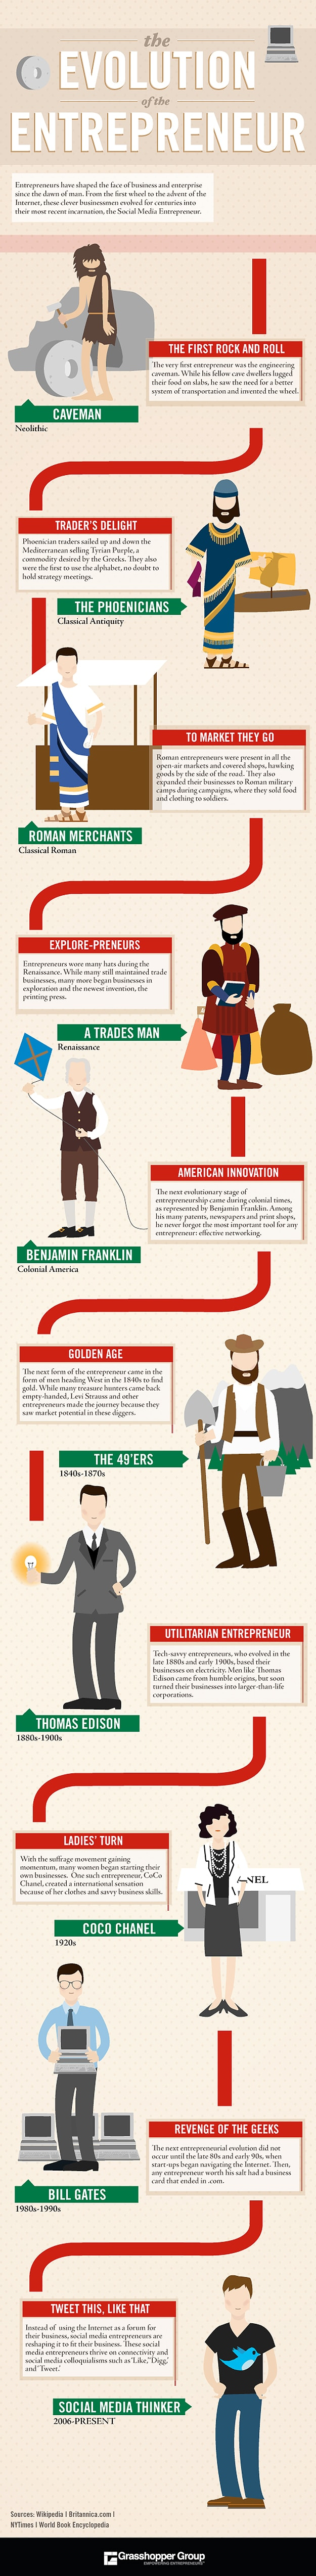 The Evolution Of The Entrepreneur [Infographic]